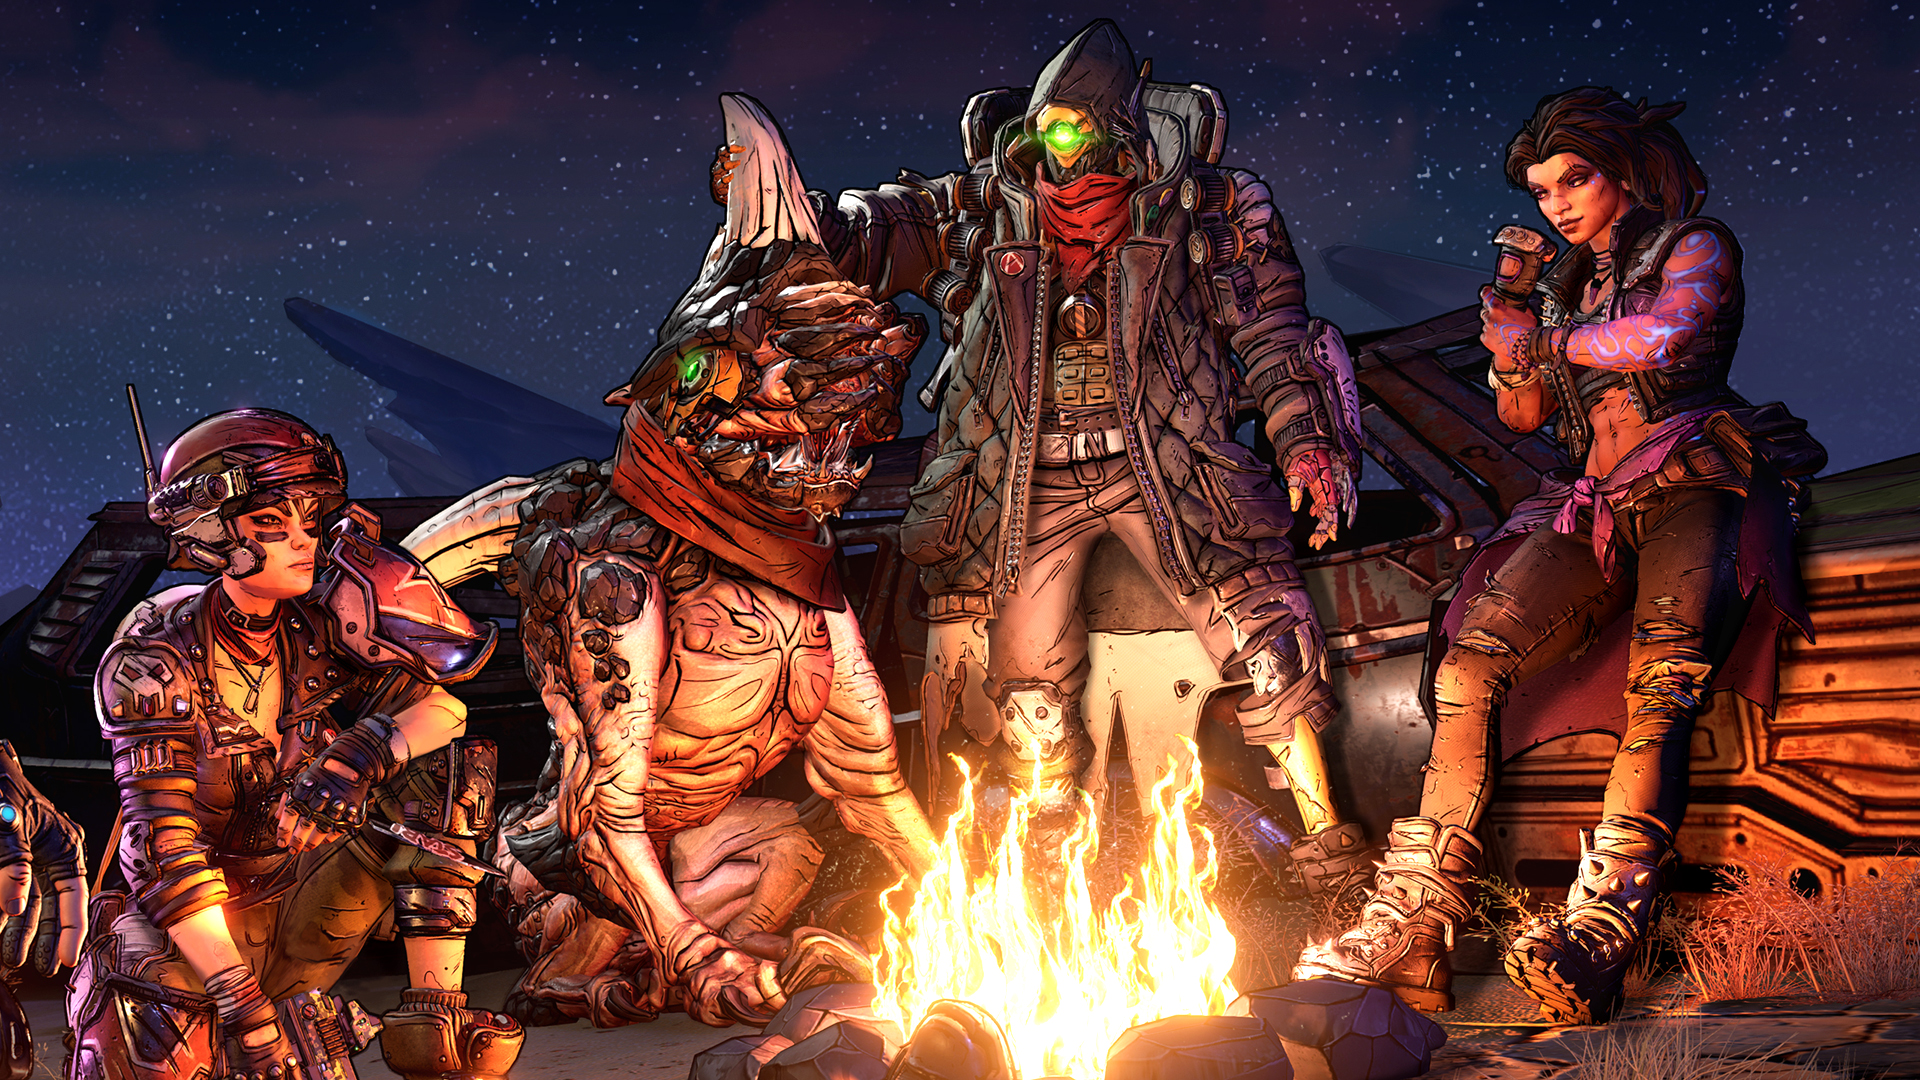 Borderlands 3 Might Not Get Any New Vault Hunters As DLC